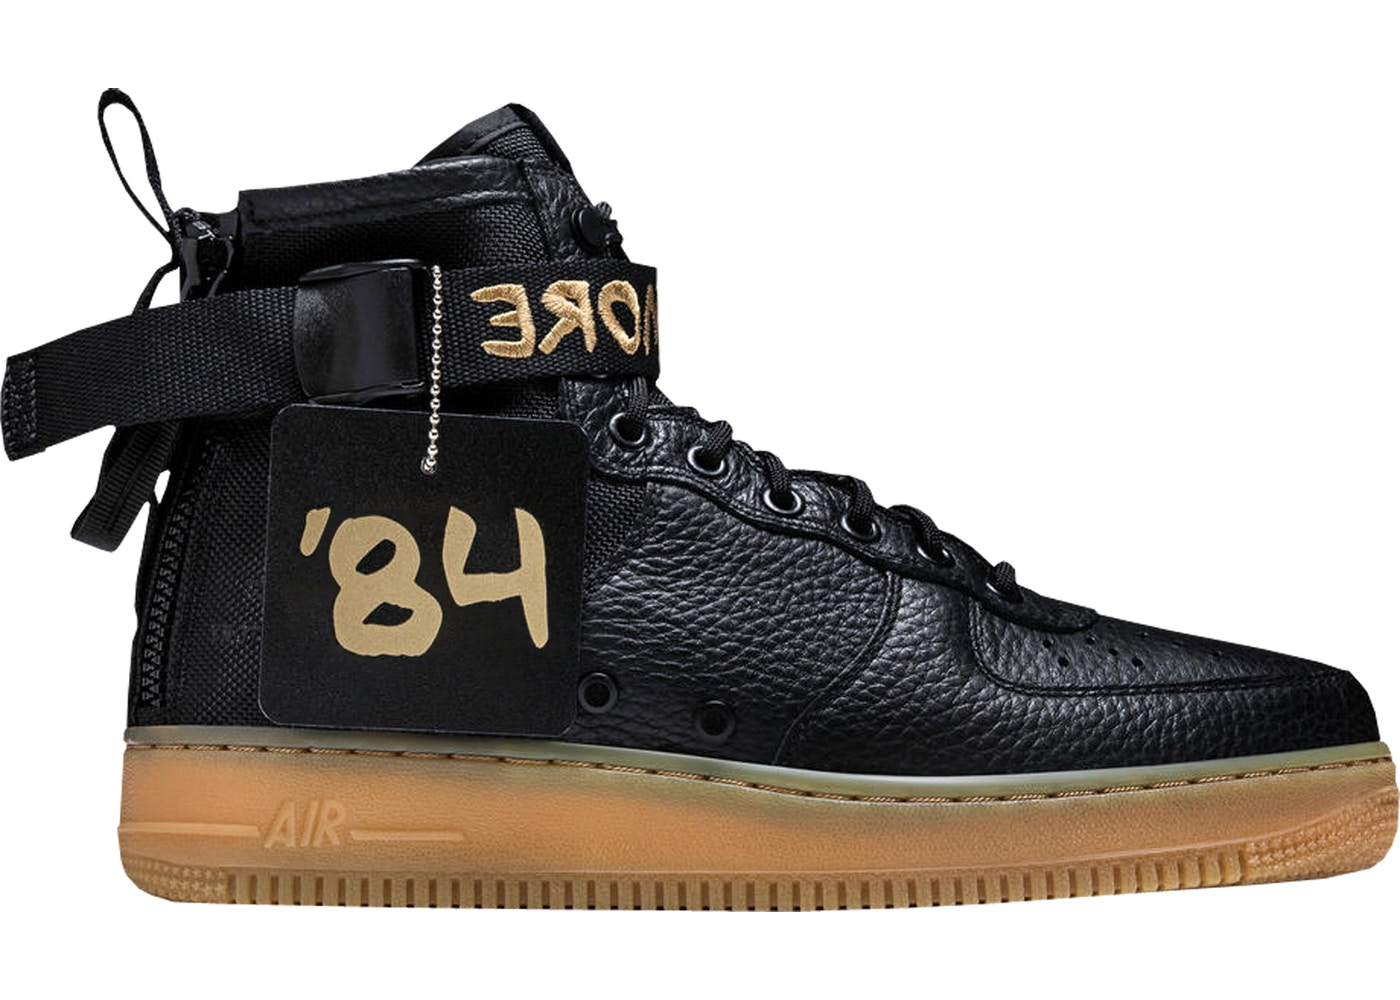 Nike SF Air Force 1 Mid For Baltimore